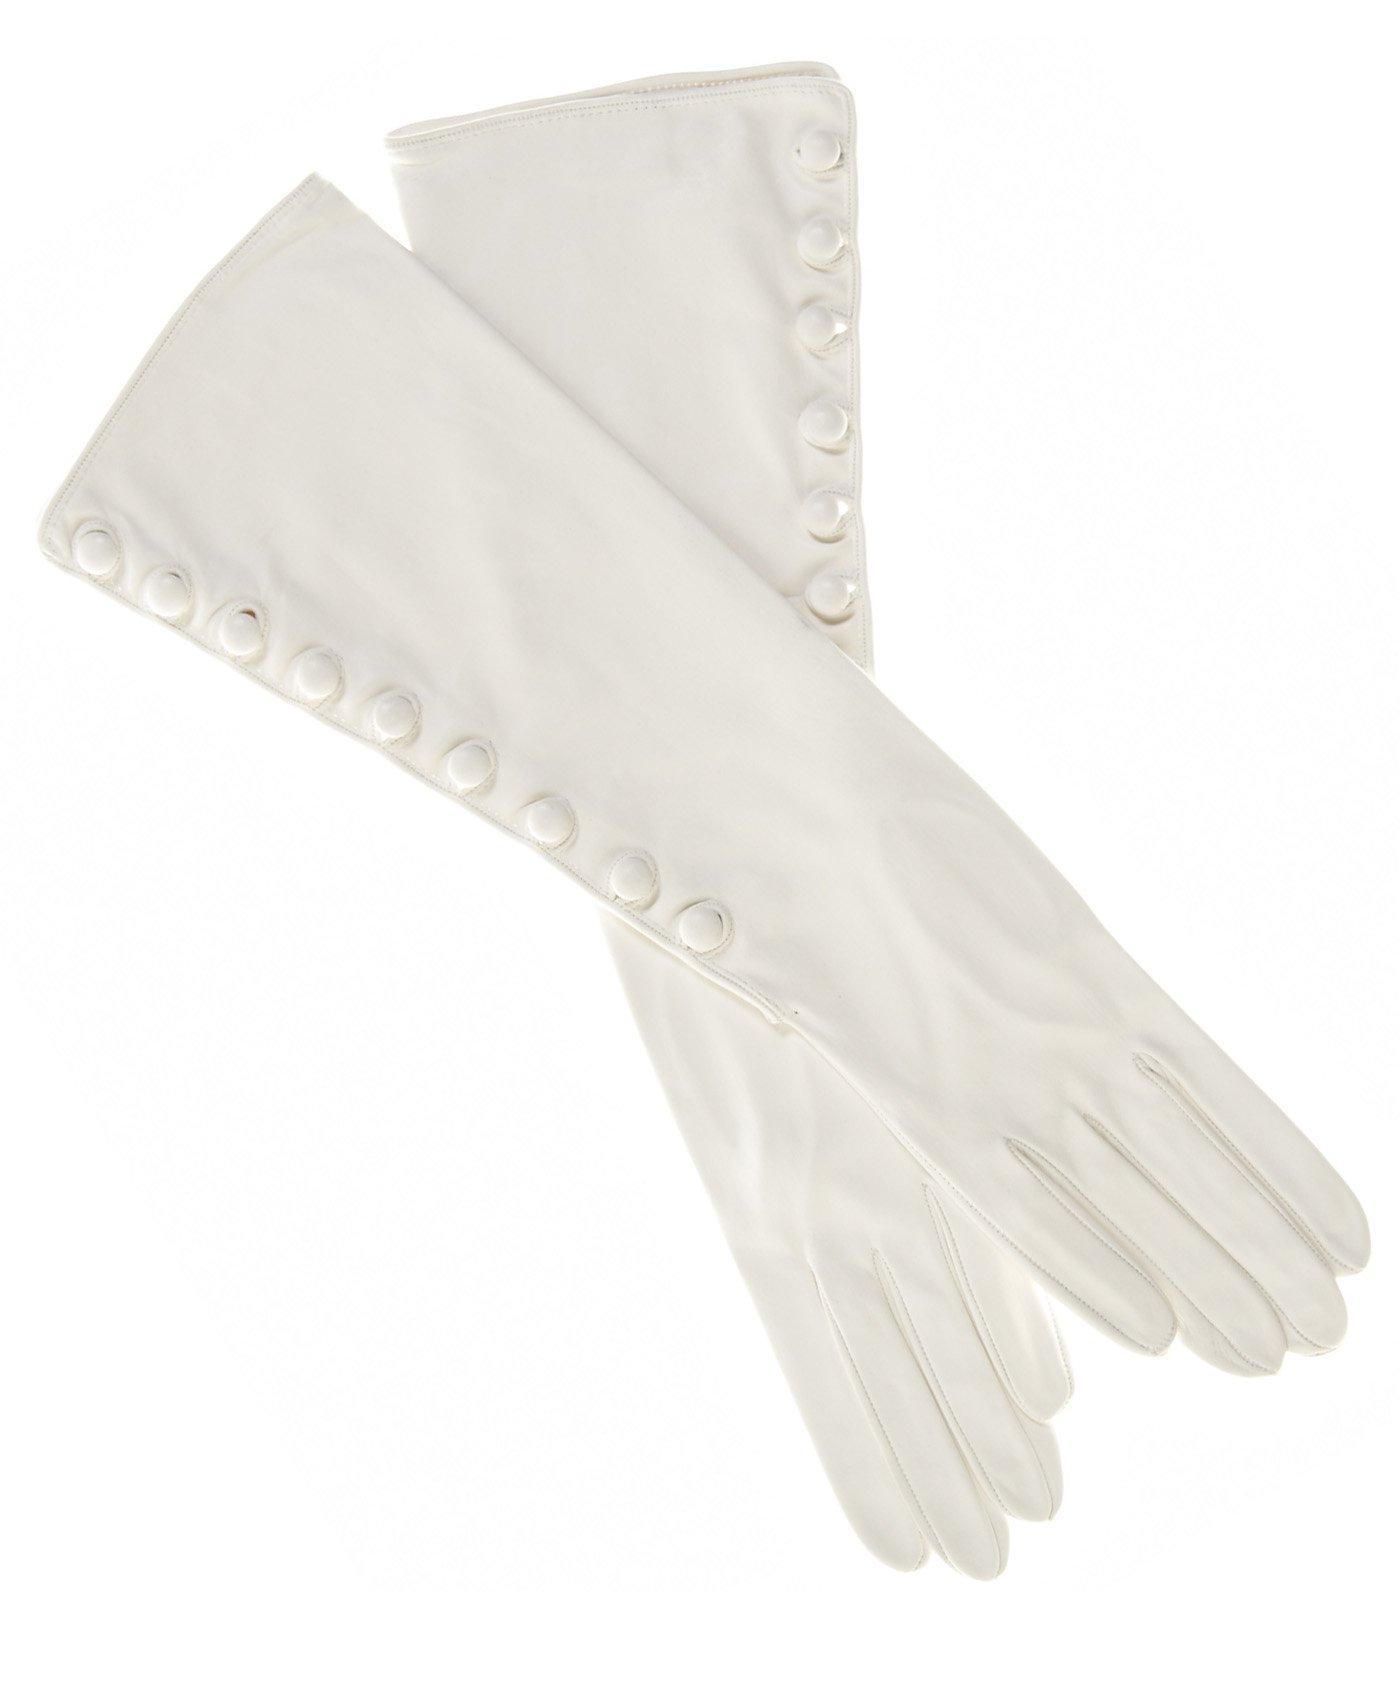 Fratelli Orsini Women's Elbow Length Silk Lined Lambskin Gloves With Buttons Size 7 1/2 Color White